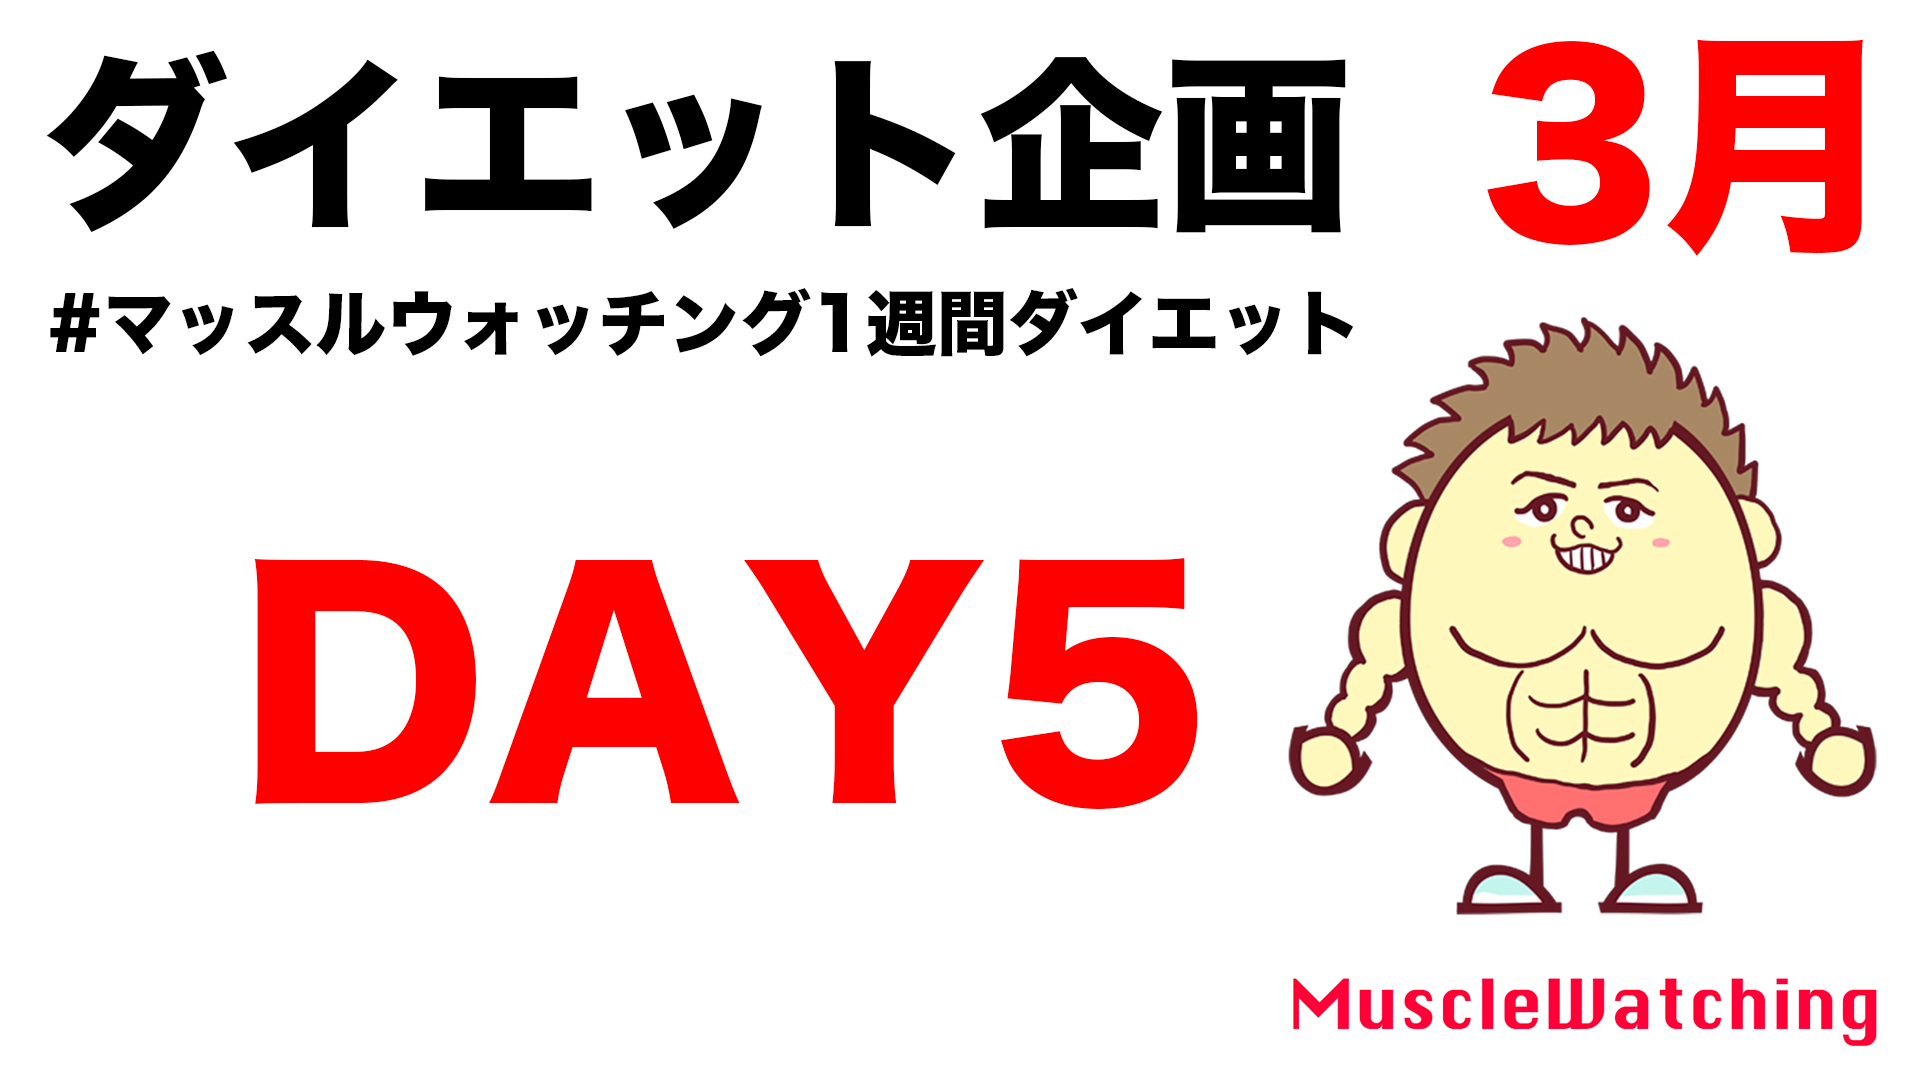 【DAY5】女性限定1週間ダイエット企画 3月| Muscle Watching